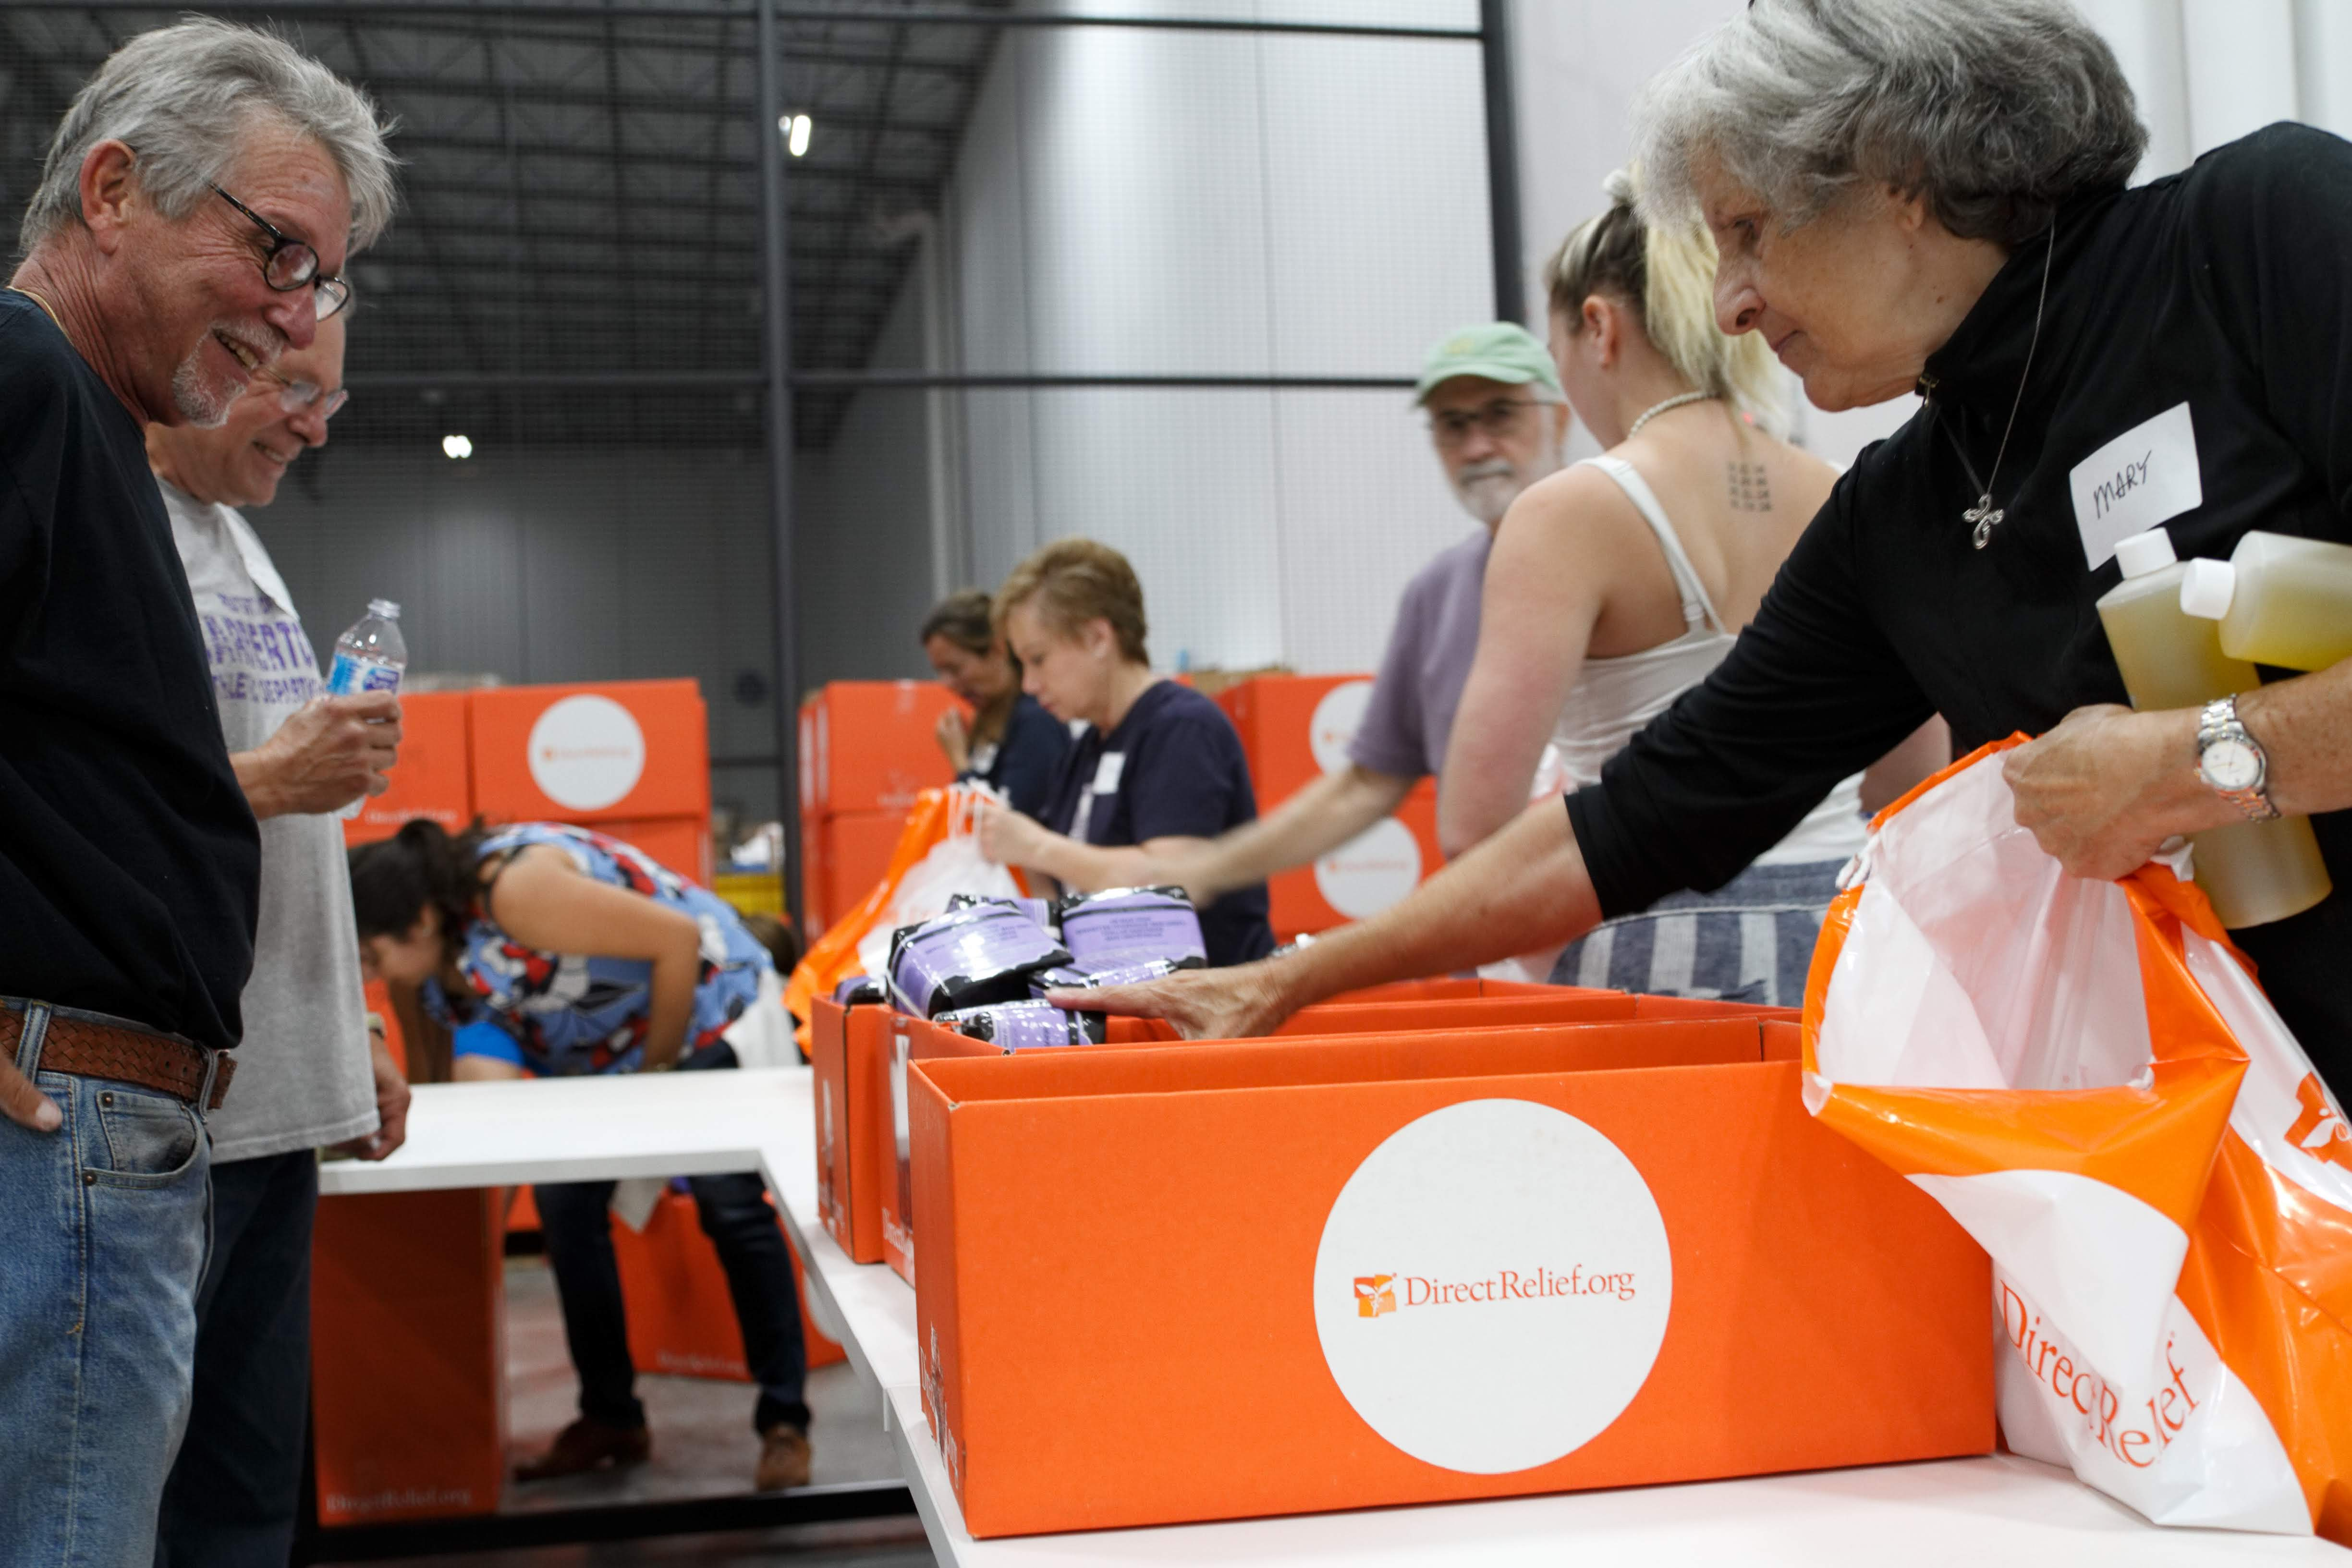 Volunteers pack up hygiene items like soap and shampoo at Direct Relief headquarters last week for people displaced from their homes after Hurricane Florence. Many people are still living in shelters since floodwaters swept through their communities. (Andrew Fletcher/Direct Relief)